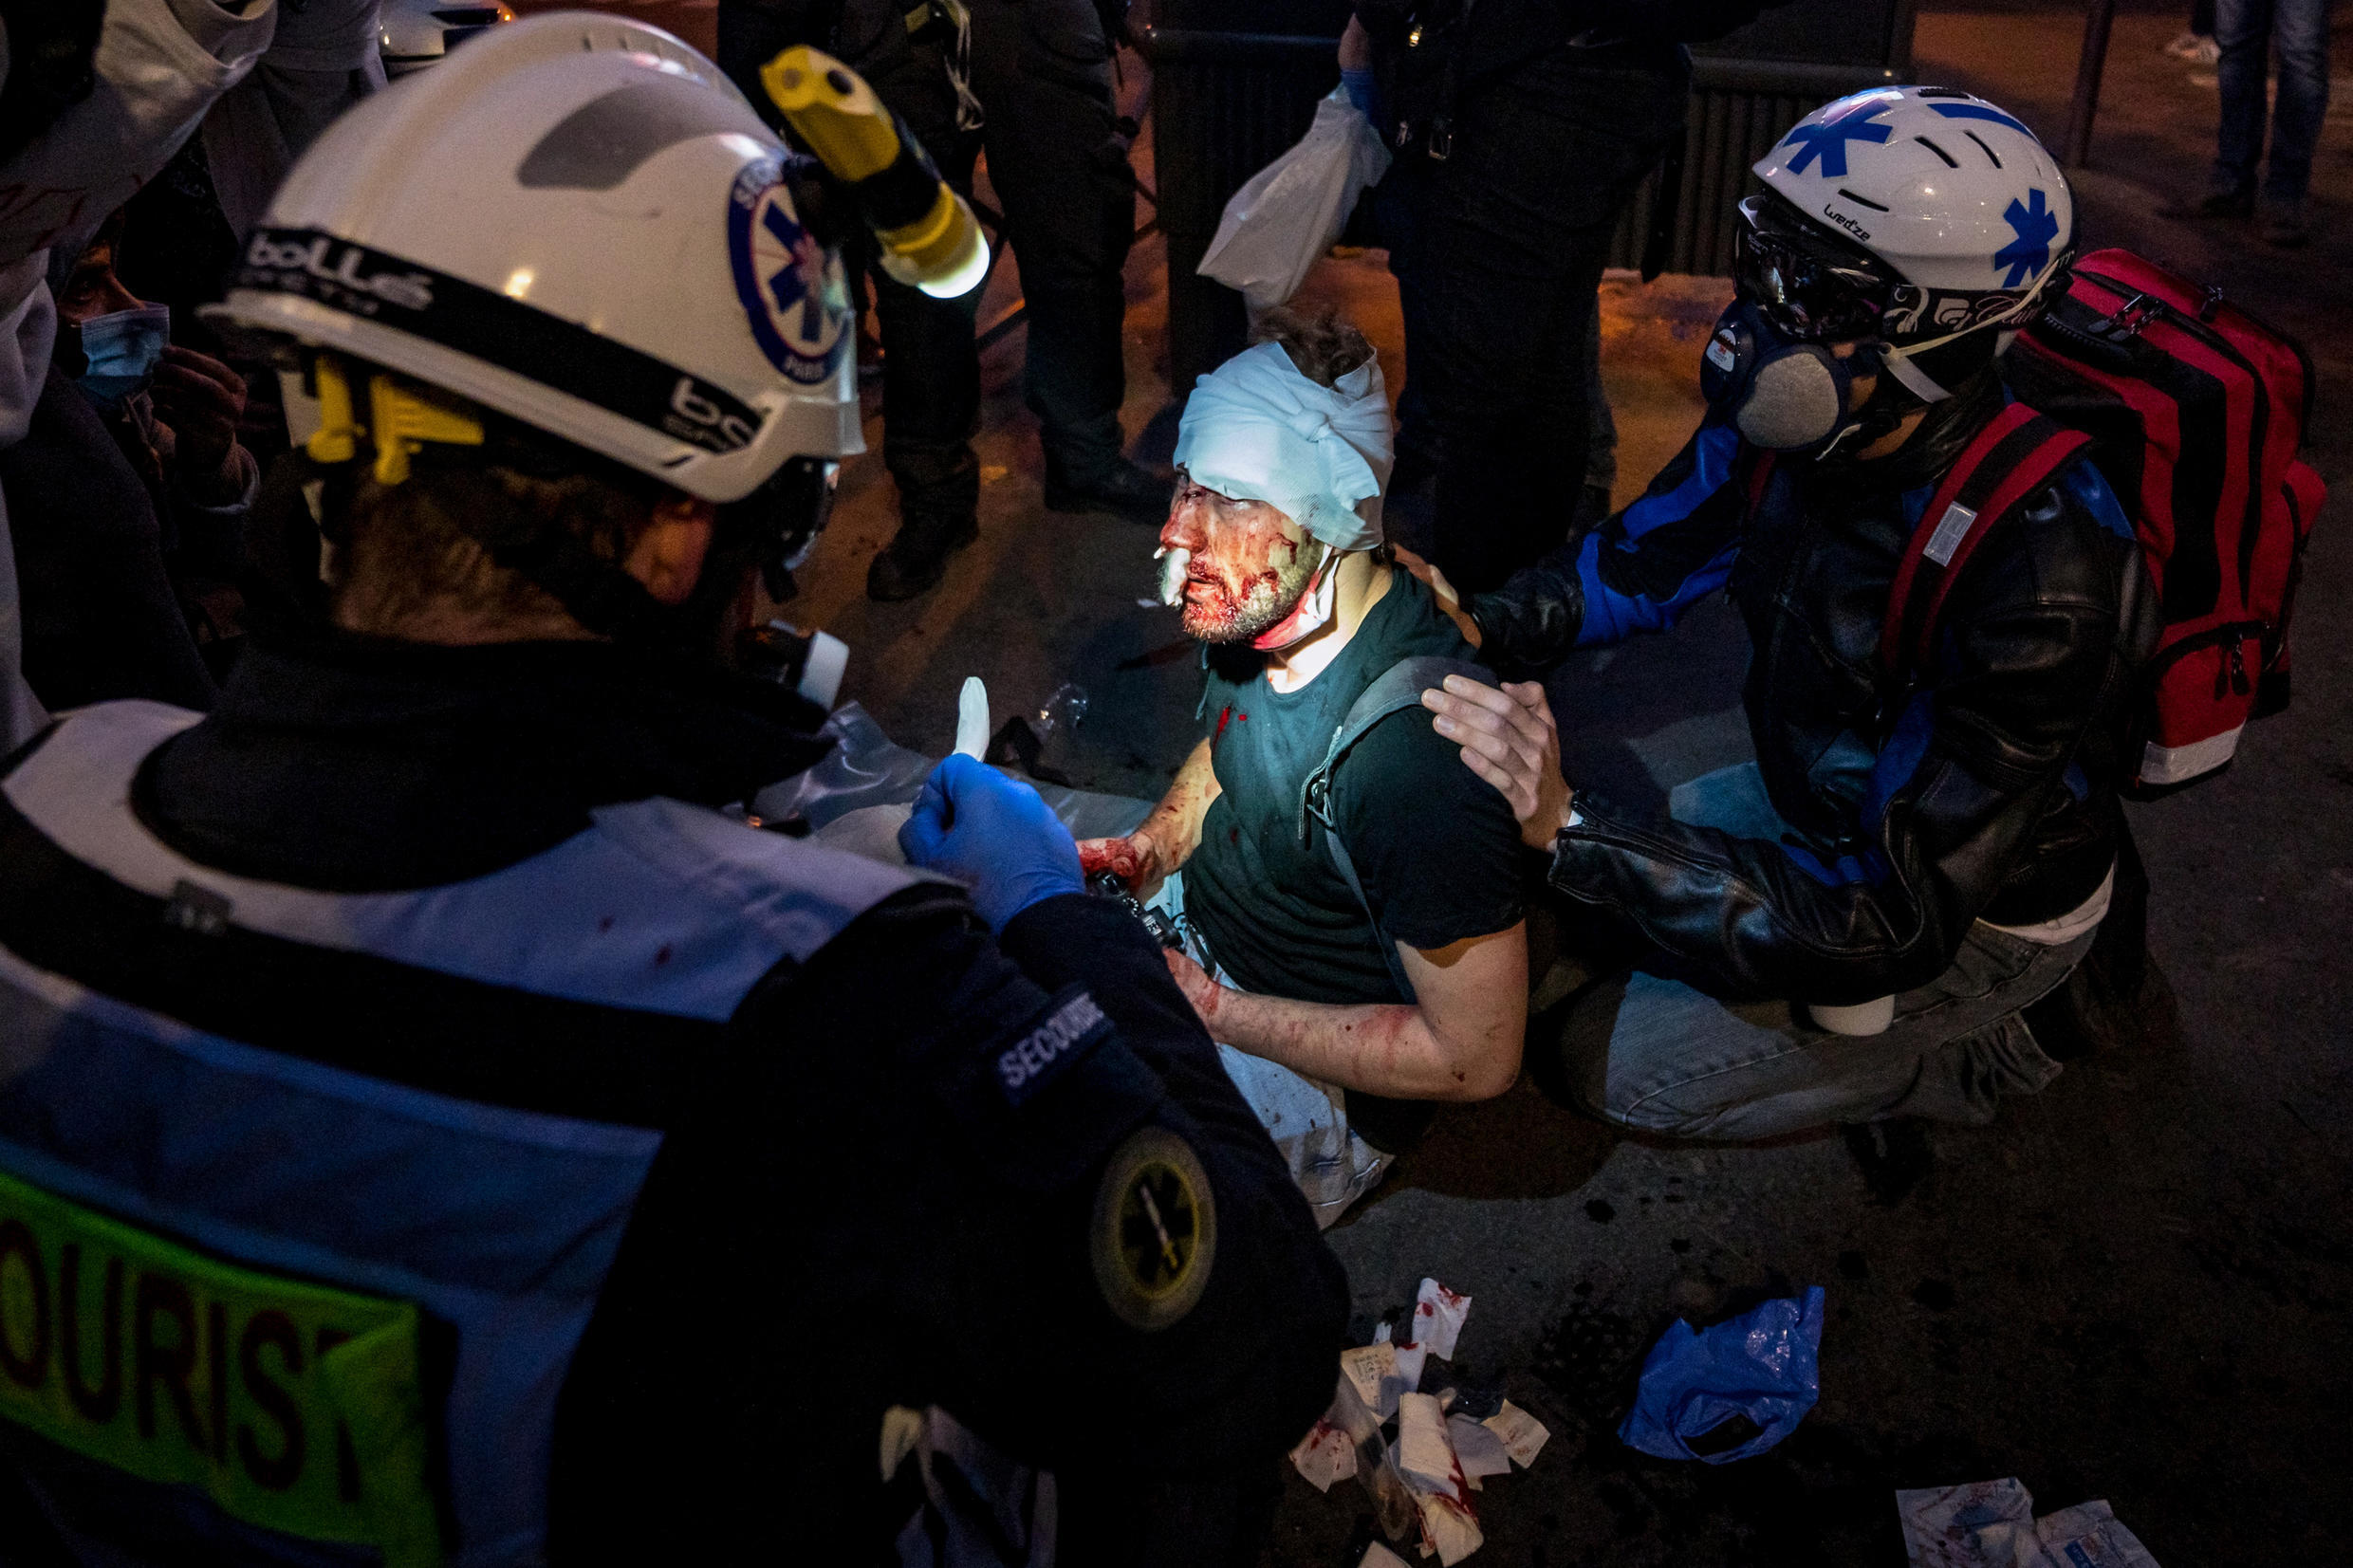 2020-11-29 france paris protest police brutality press freedom photographer Ameer Alhalbi syria